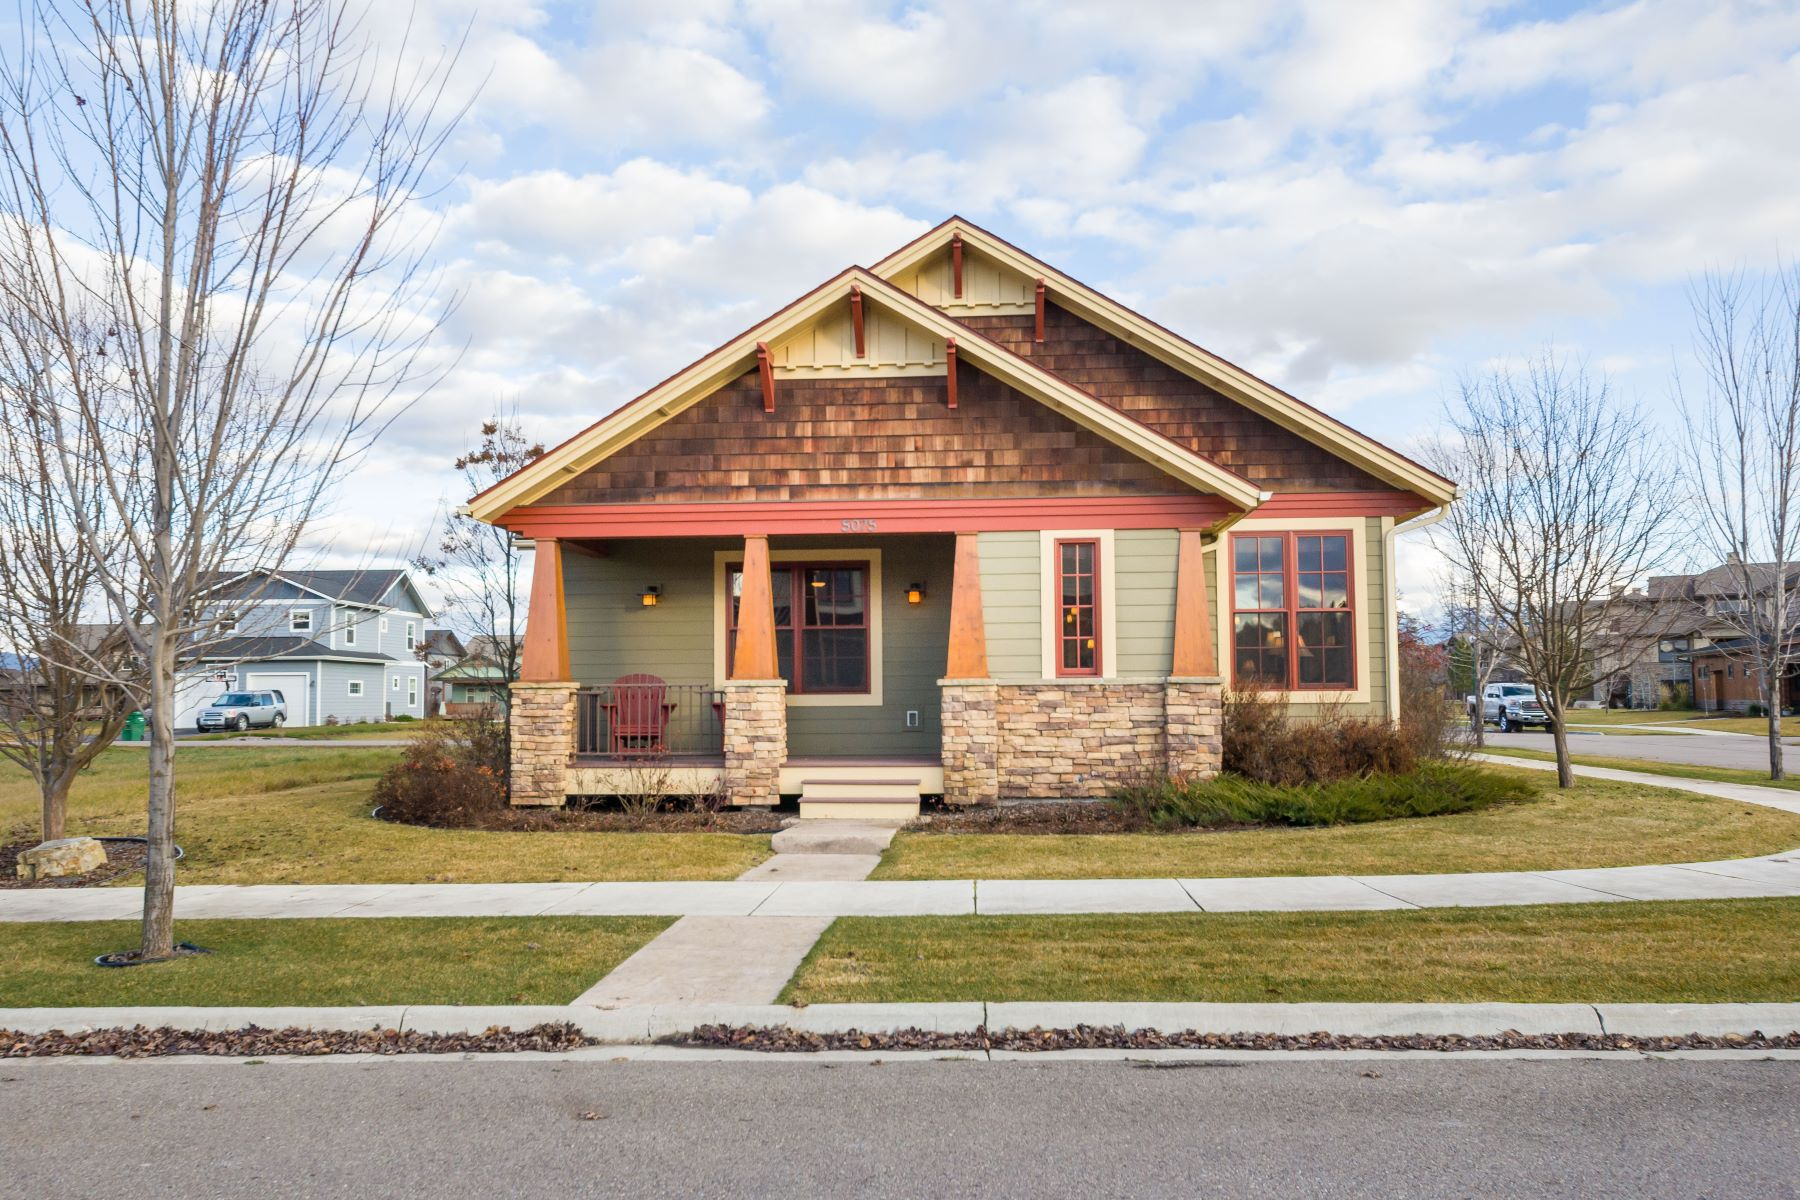 Single Family Home for Sale at 5075 Portage Way , Whitefish, MT 59937 5075 Portage Way Whitefish, Montana 59937 United States